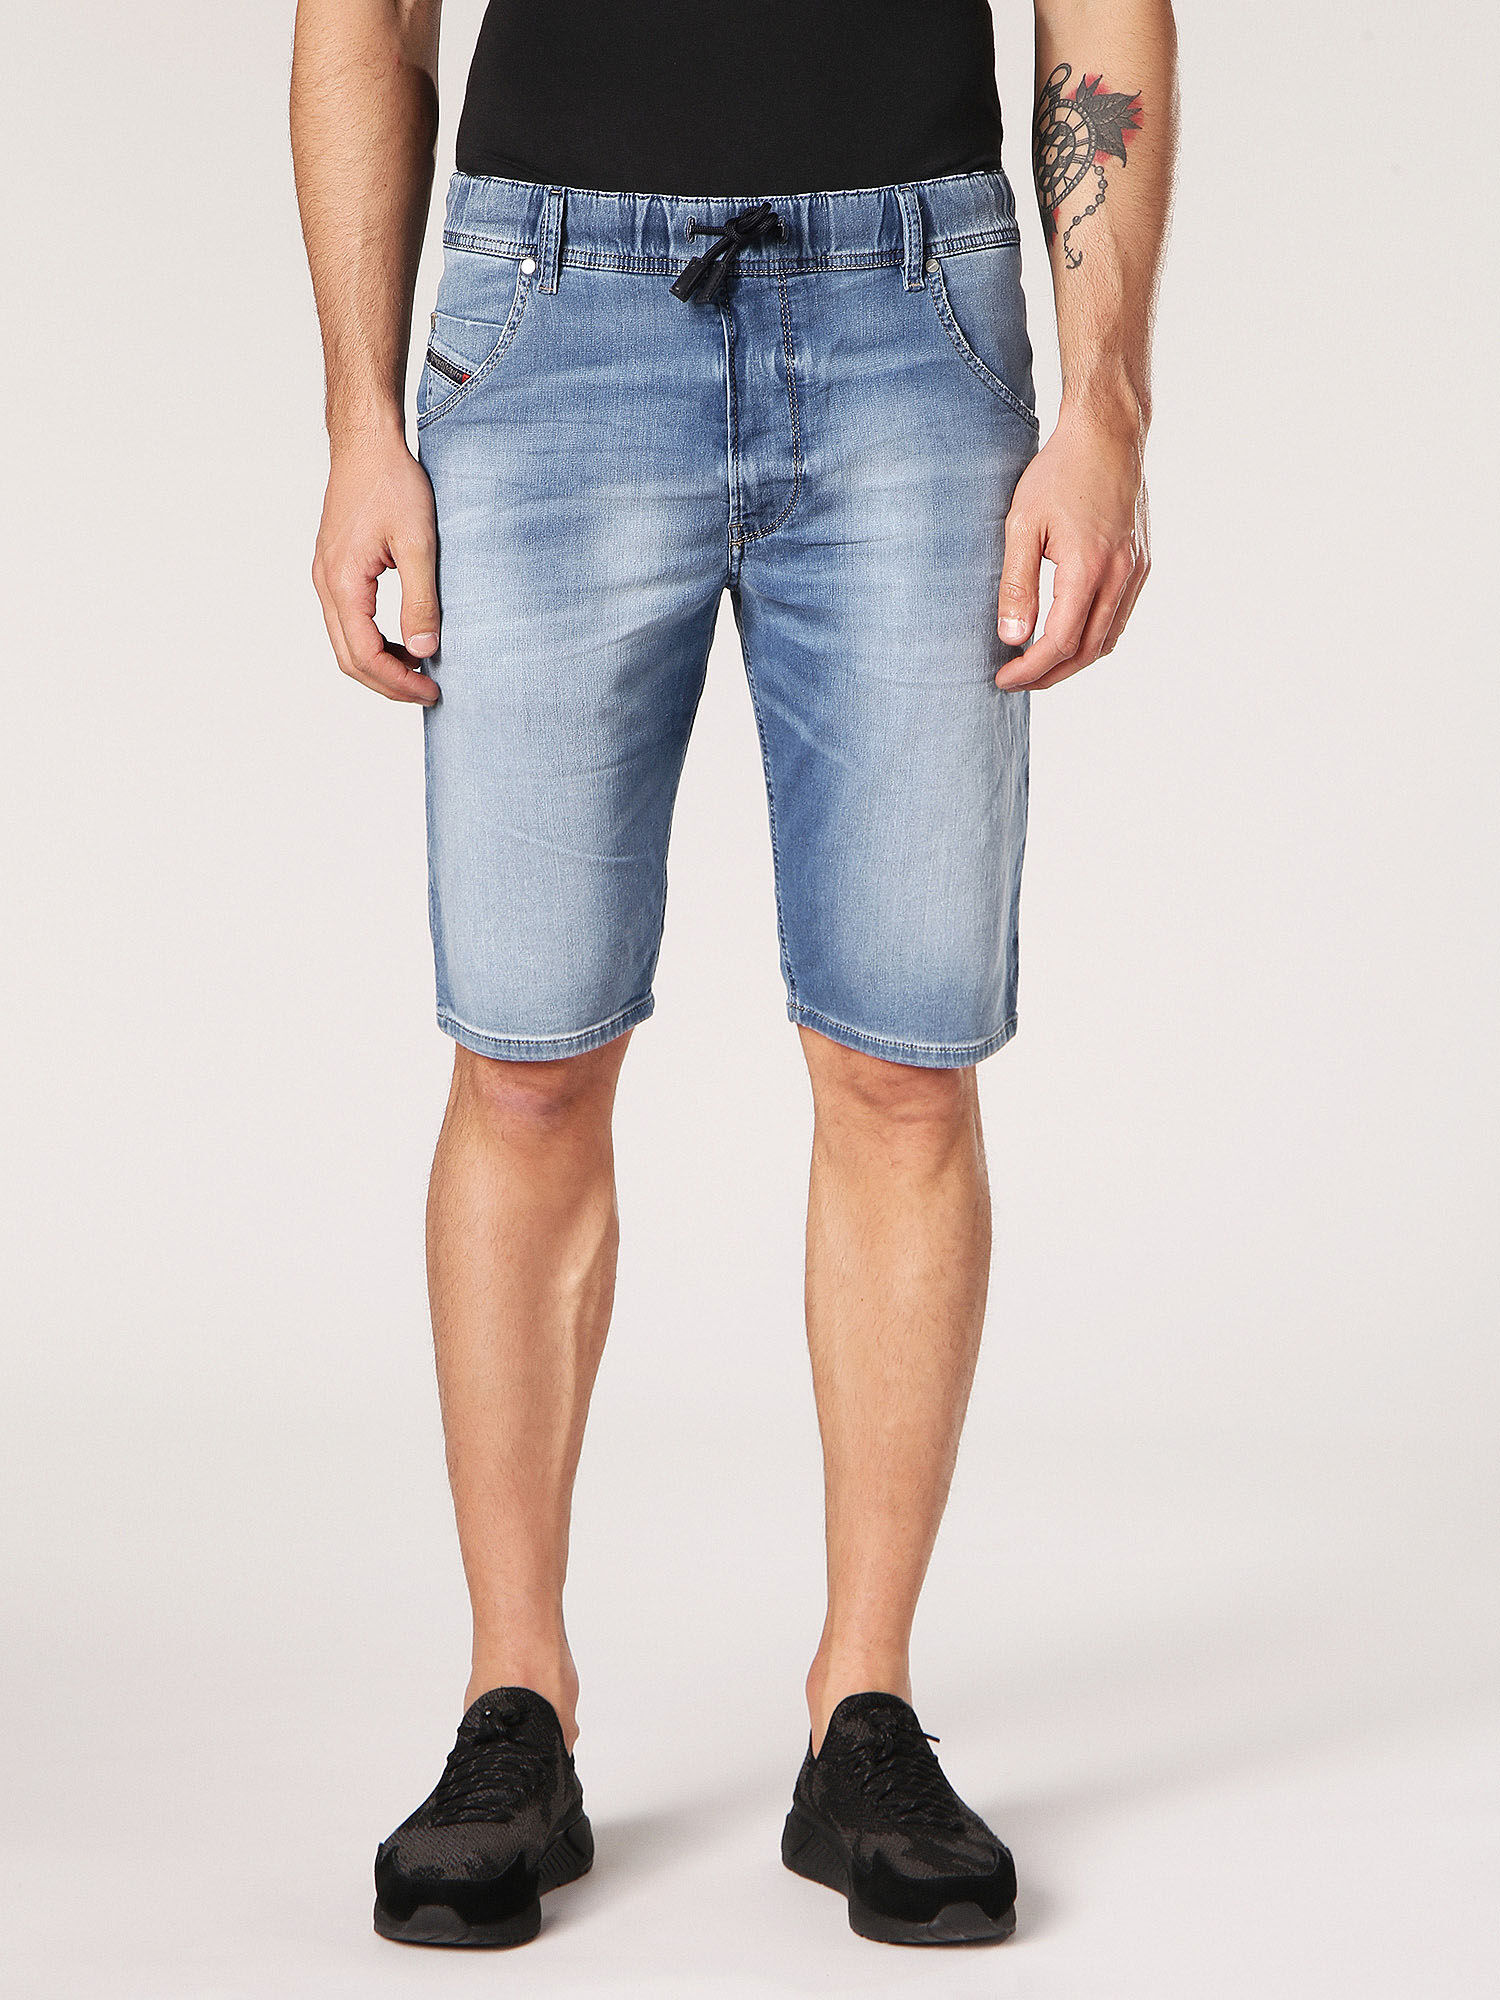 Shorts for Men On Sale, Blue Denim, Cotton, 2017, 29 33 Diesel